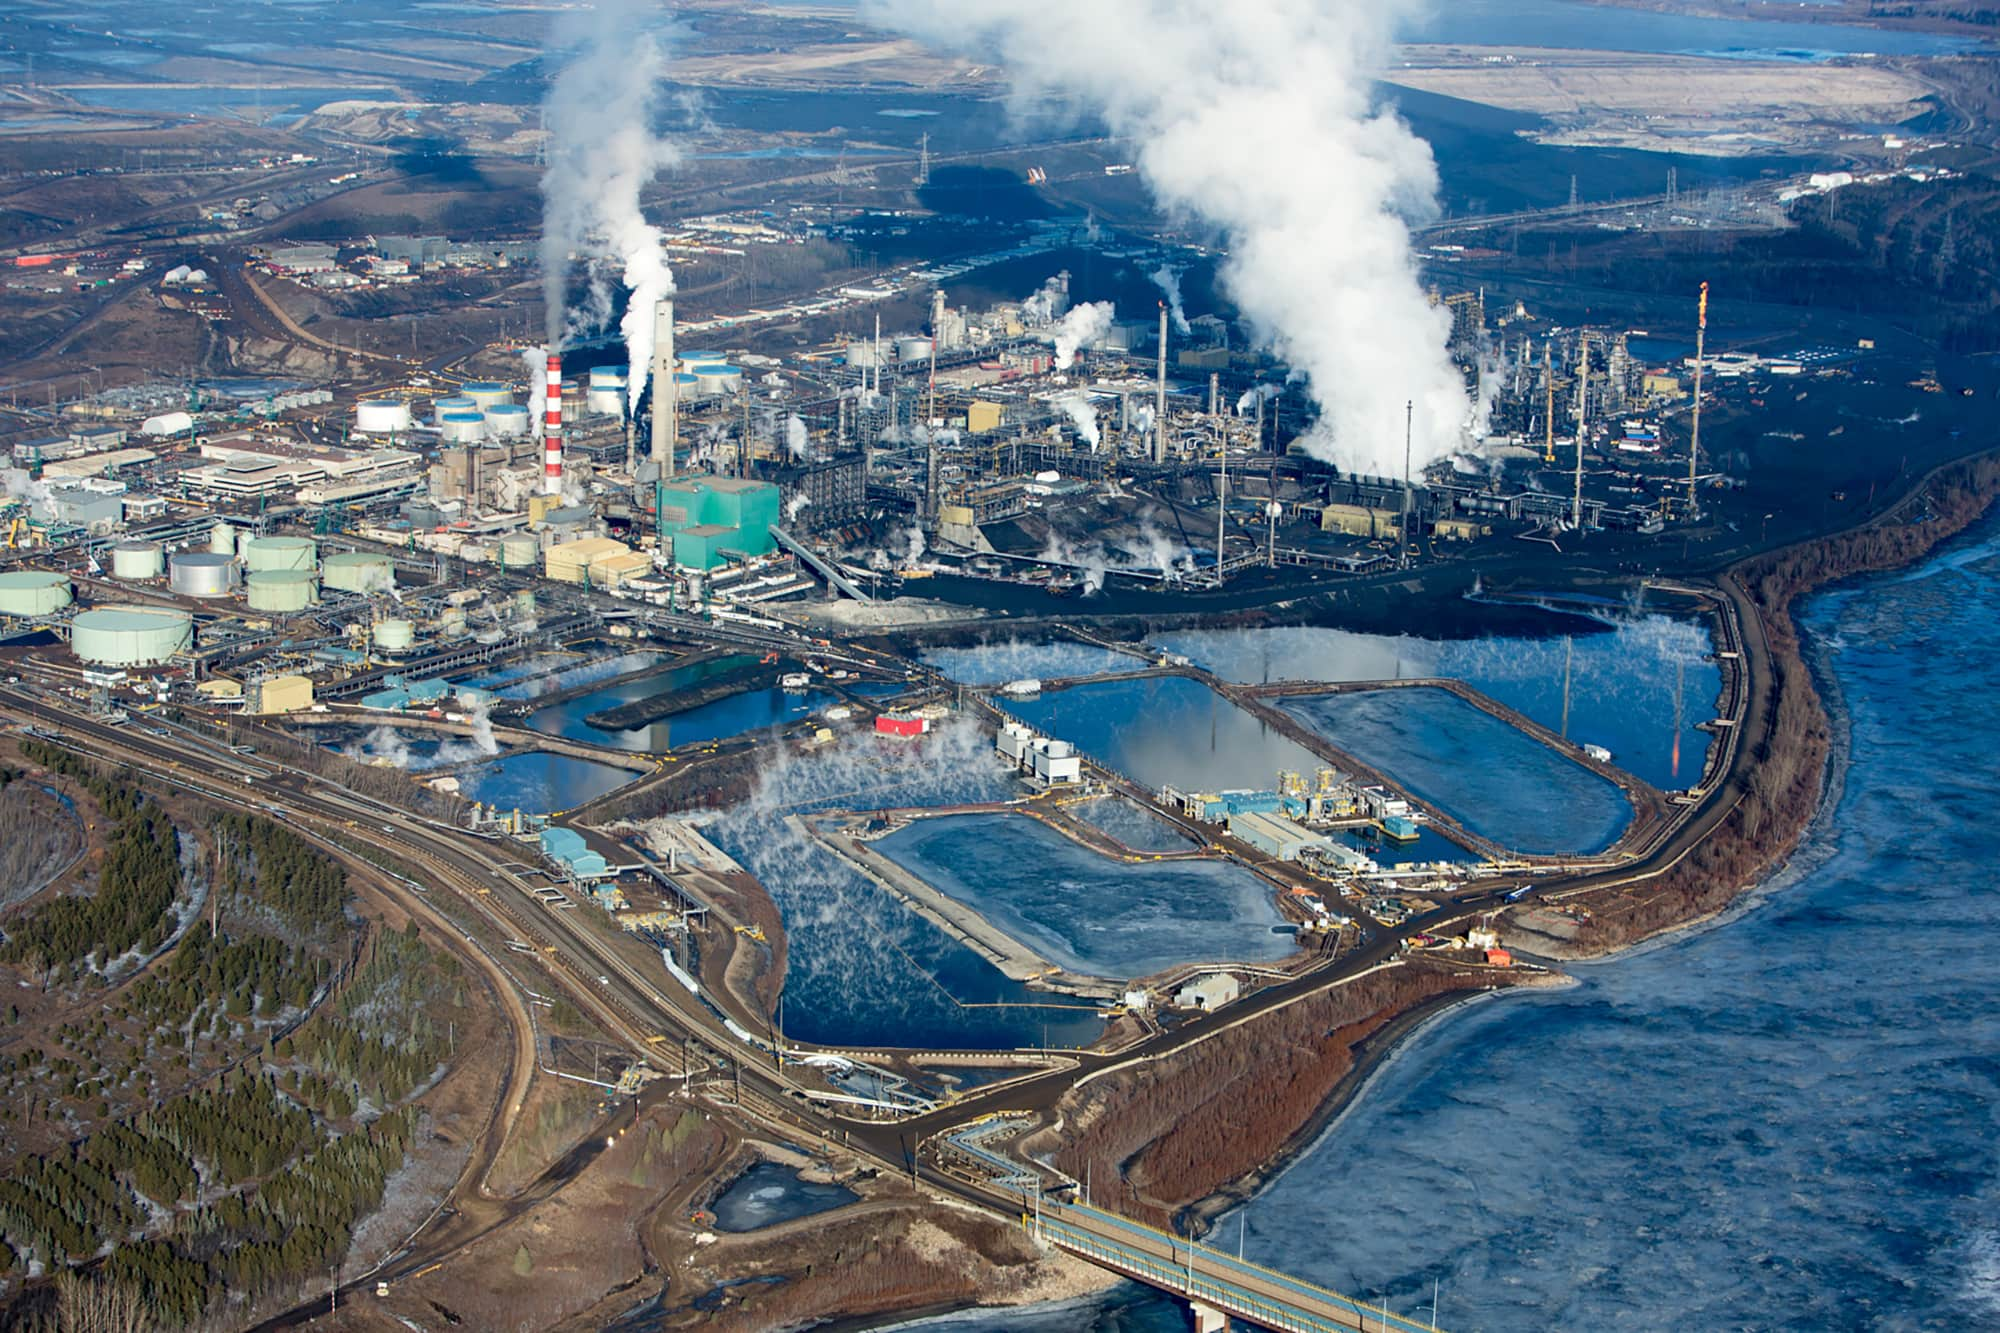 oilsands refinery from above with plumes of smoke